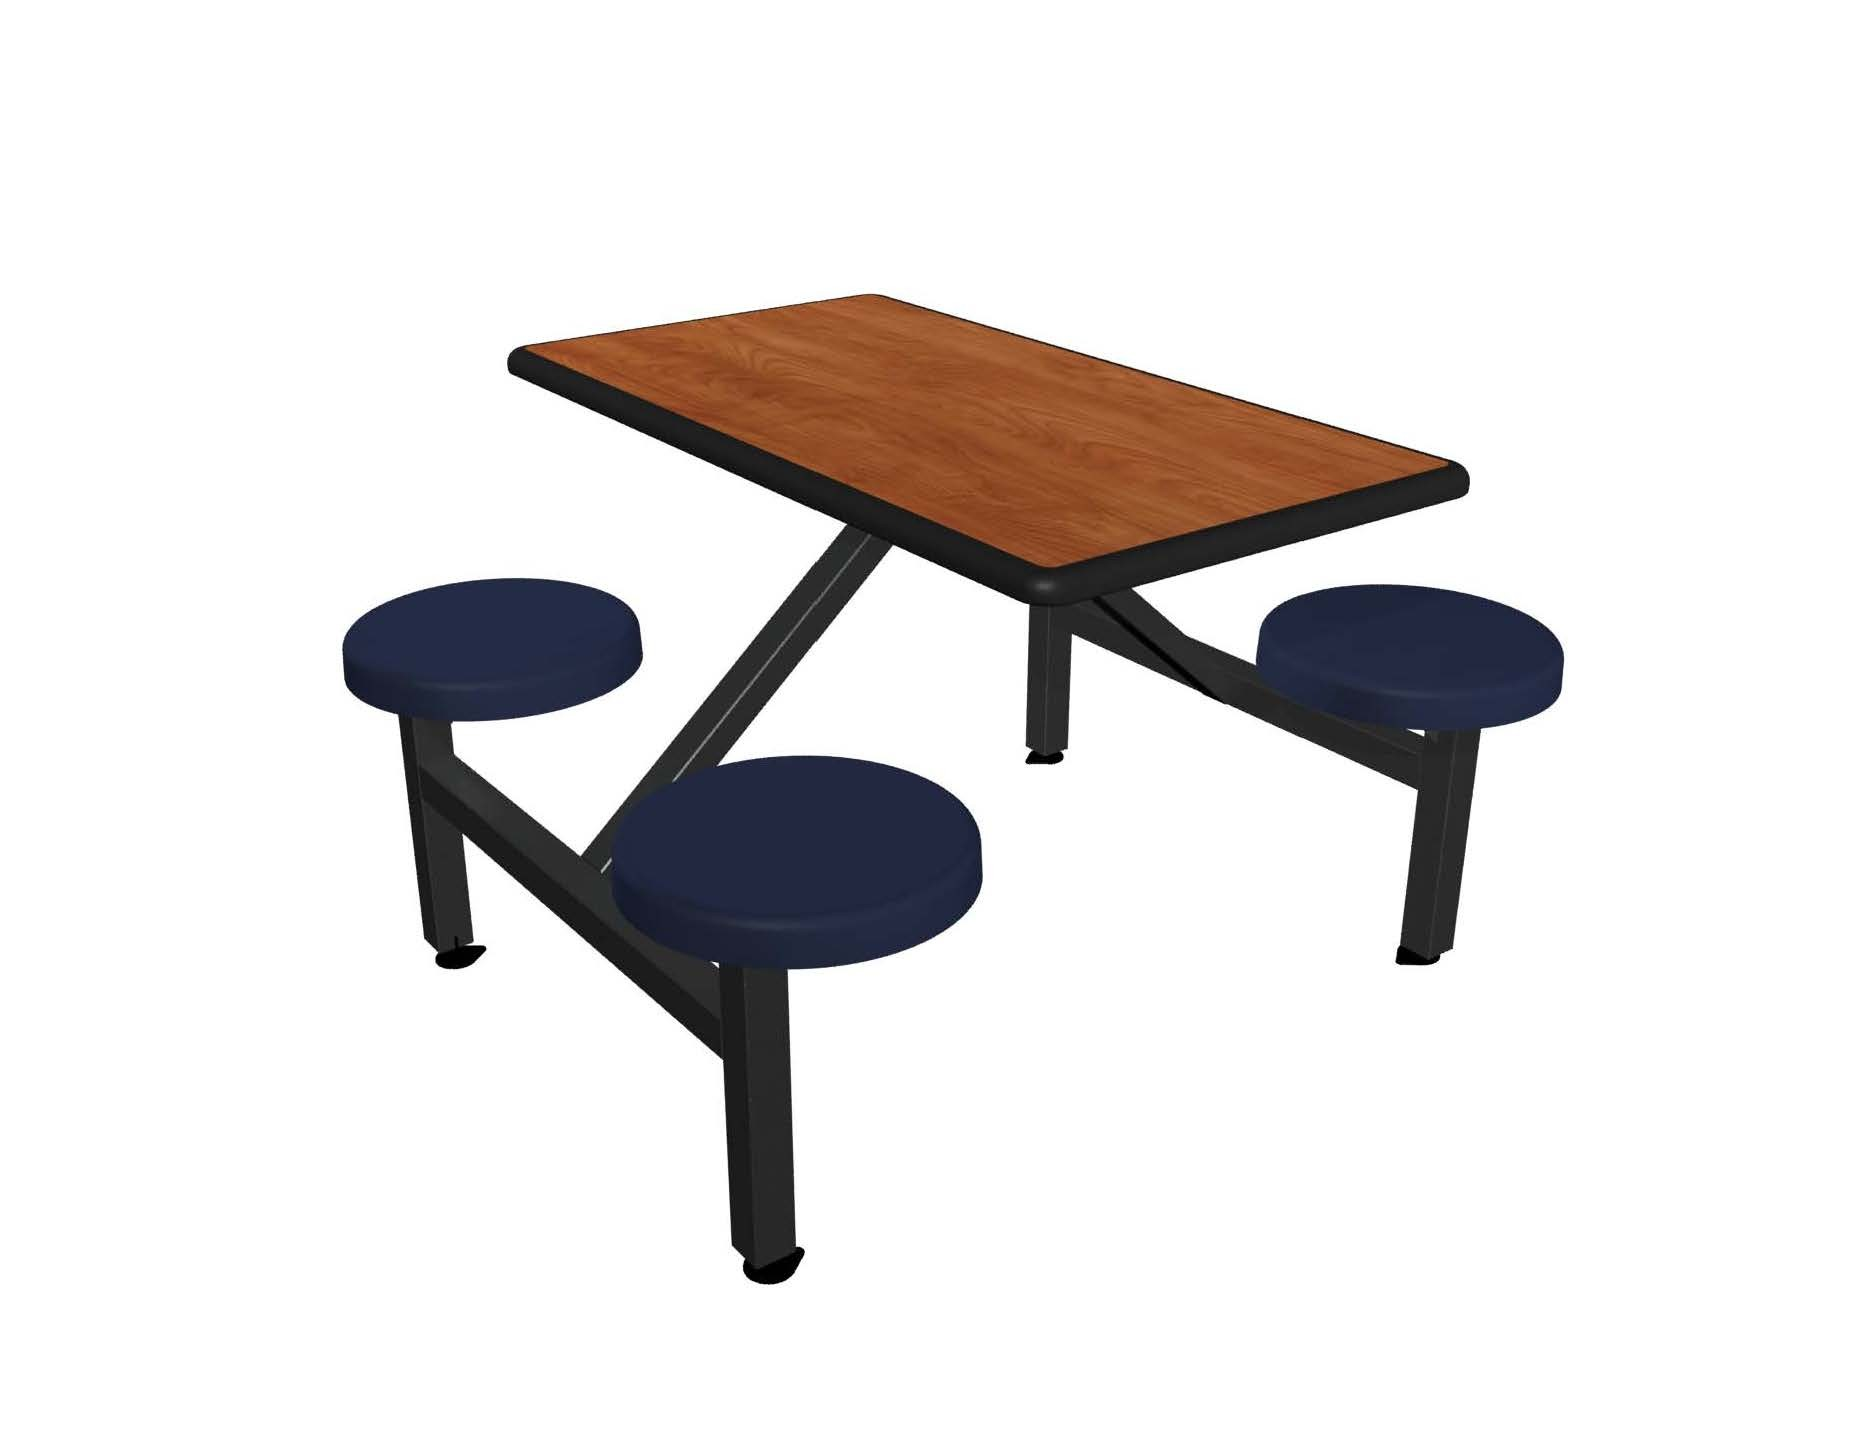 Wild Cherry laminate table top, Black Dur-A-Edge®, Navy composite button seat